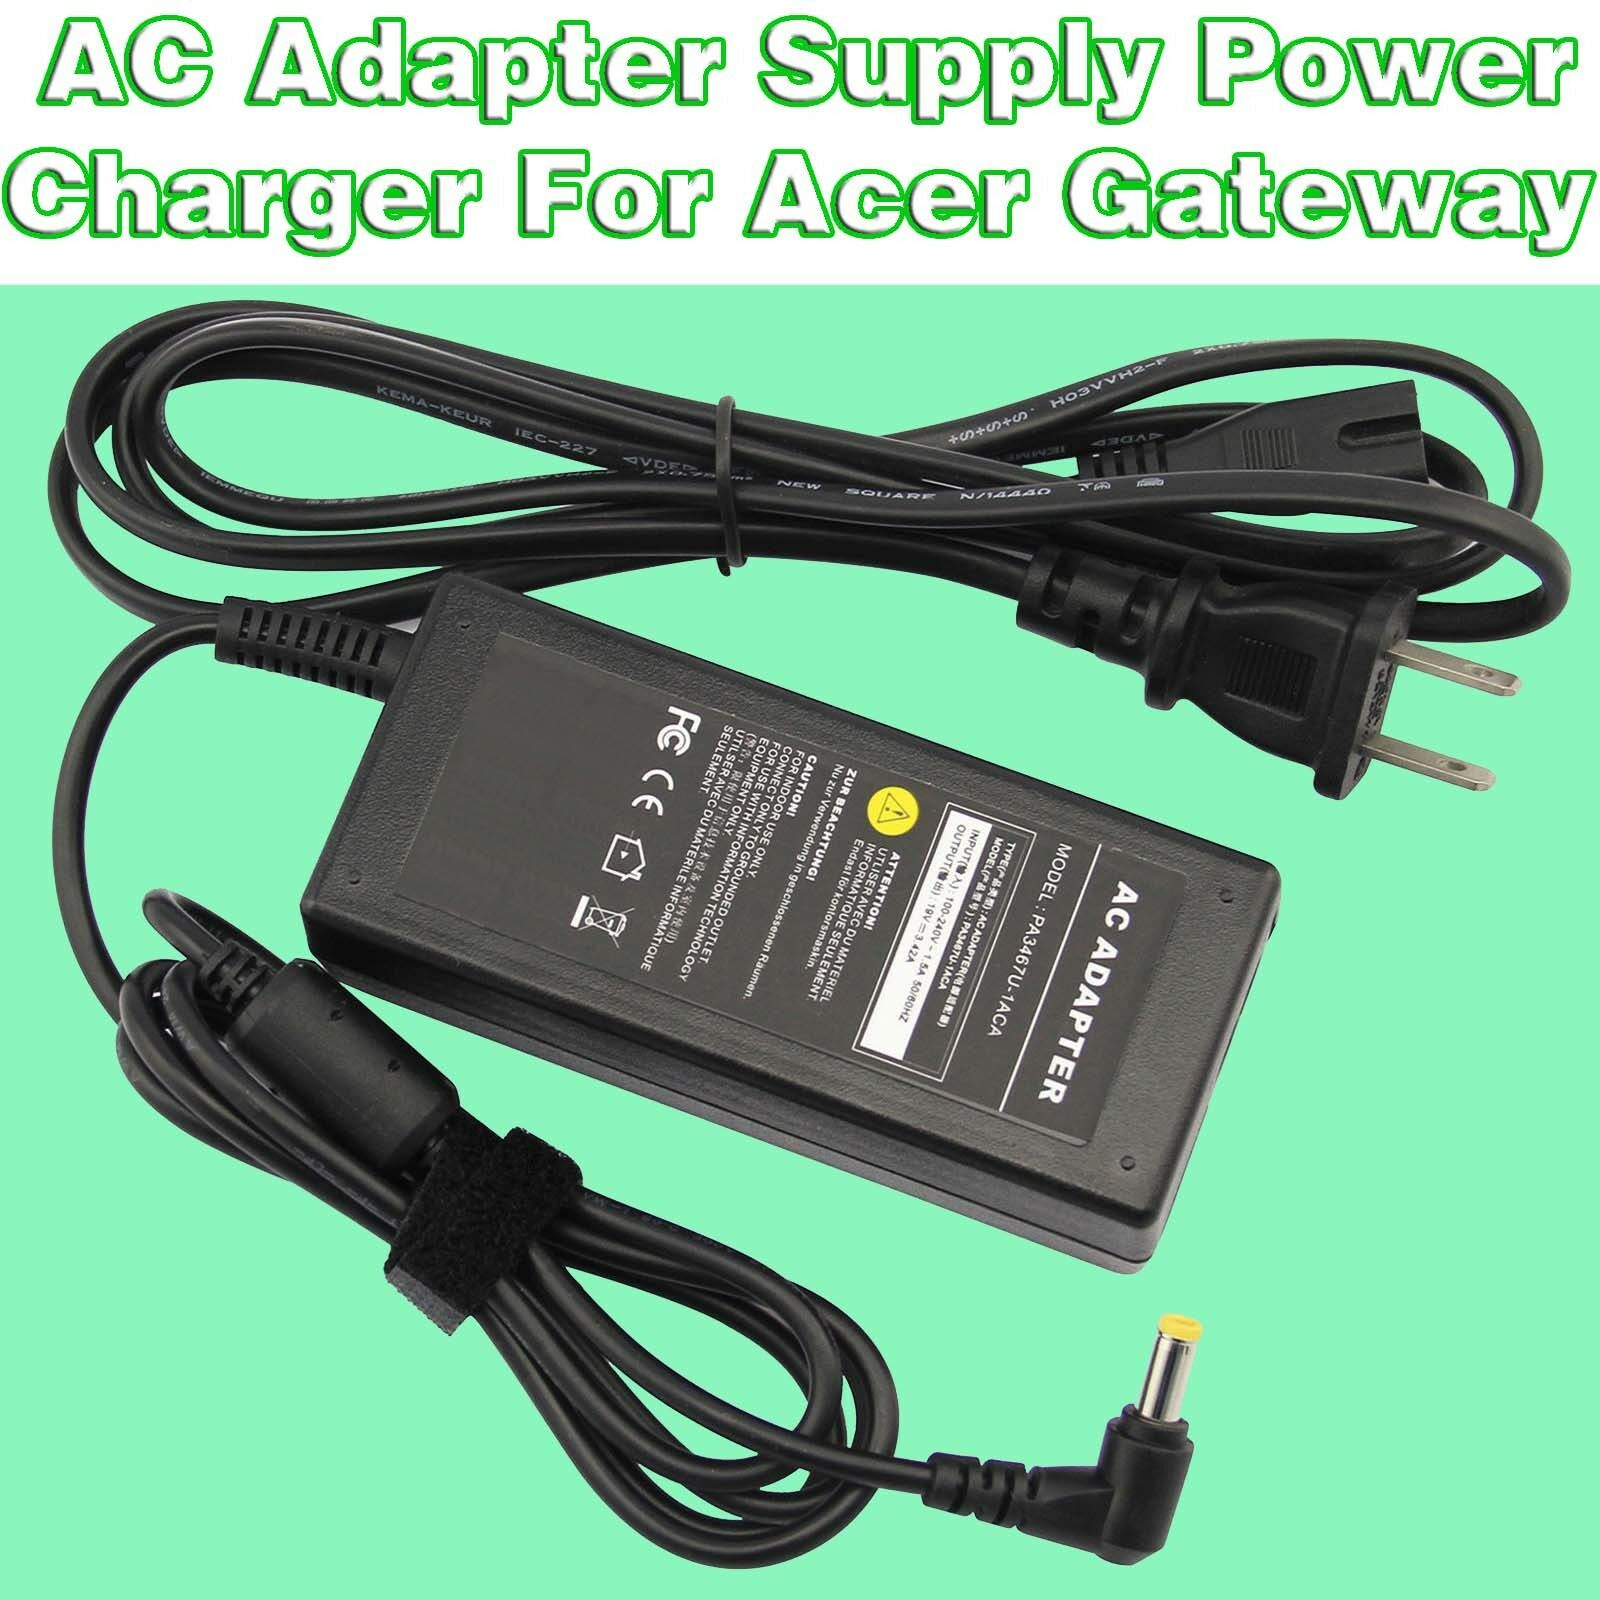 19V 3.42A 65W Laptop AC Adapter Supply Power Charger for Ace